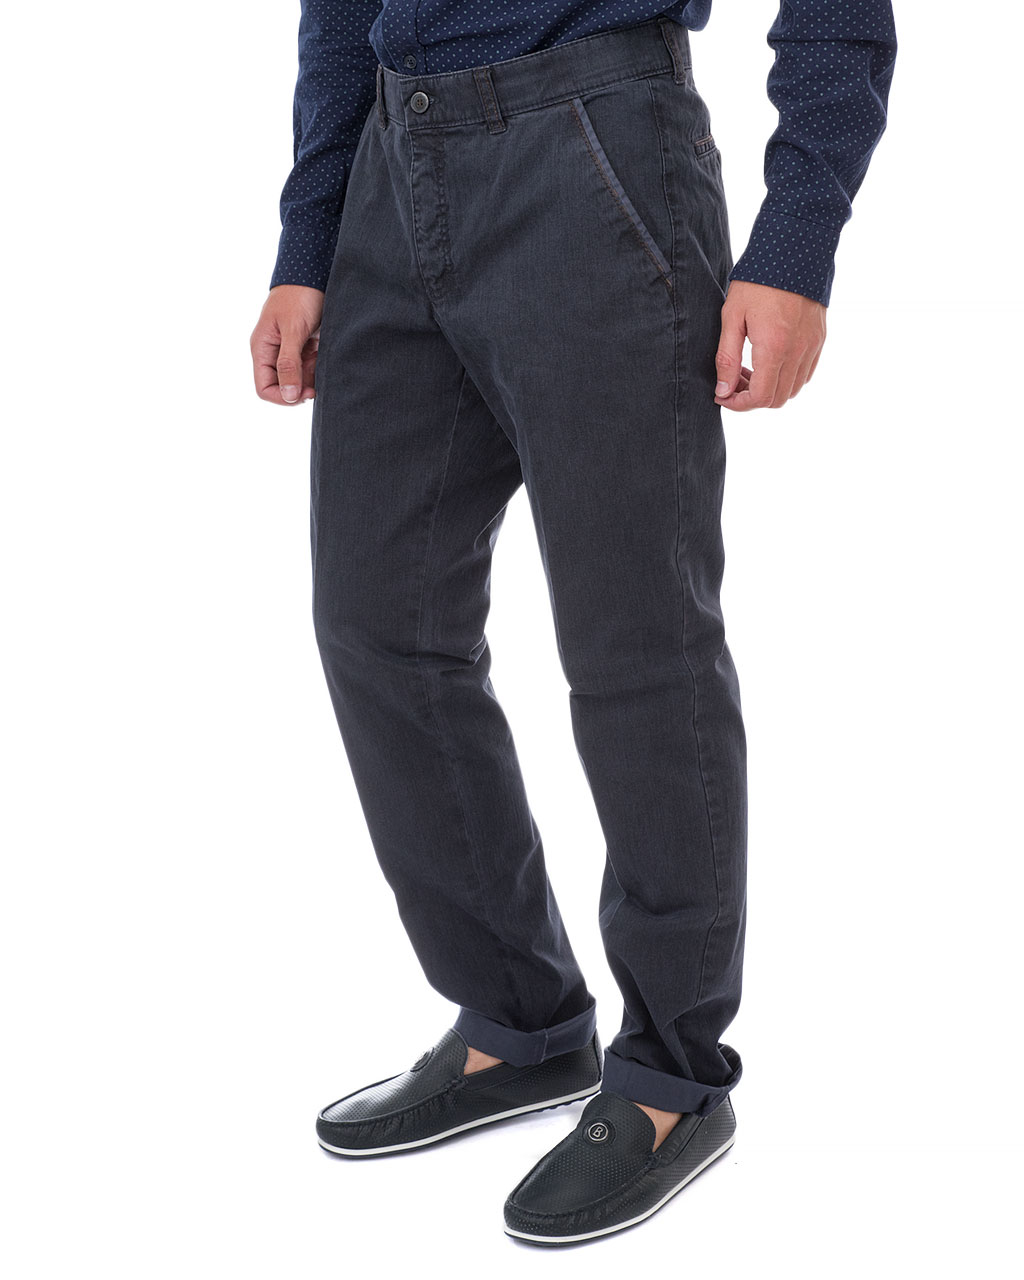 Men's trousers Garvey 6801-44/19-20 (3)